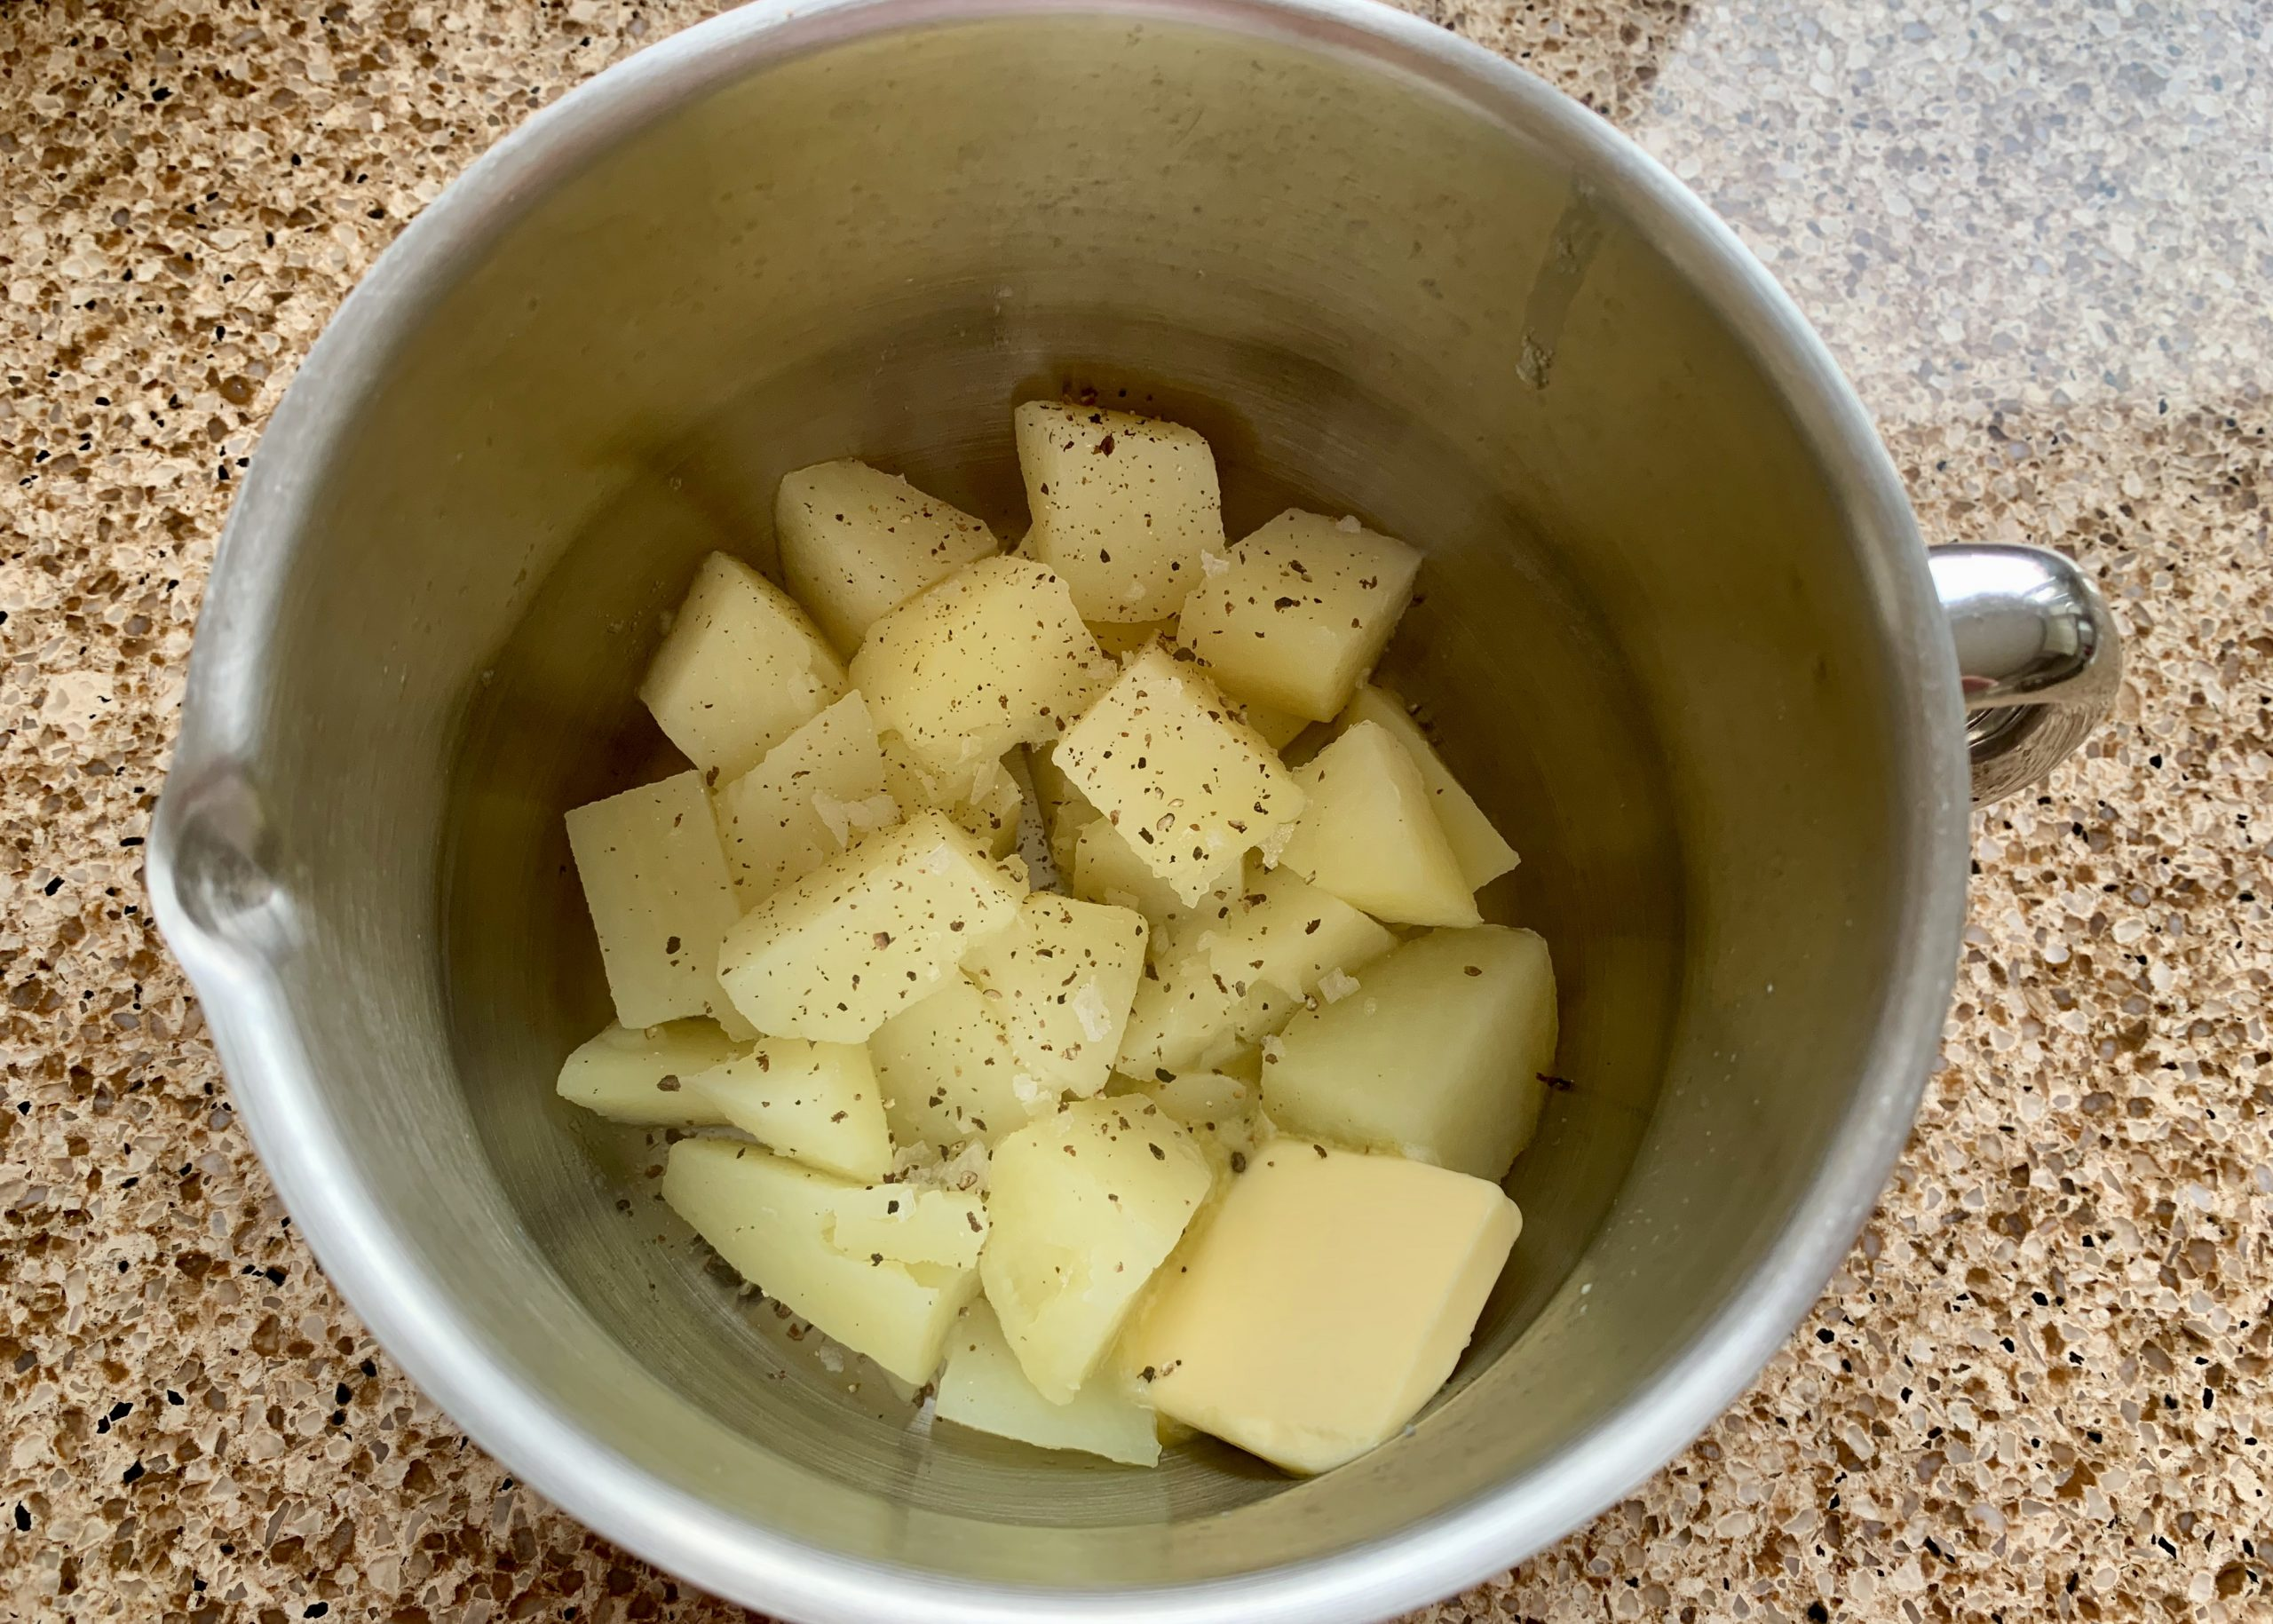 Diced potato and butter in a pan